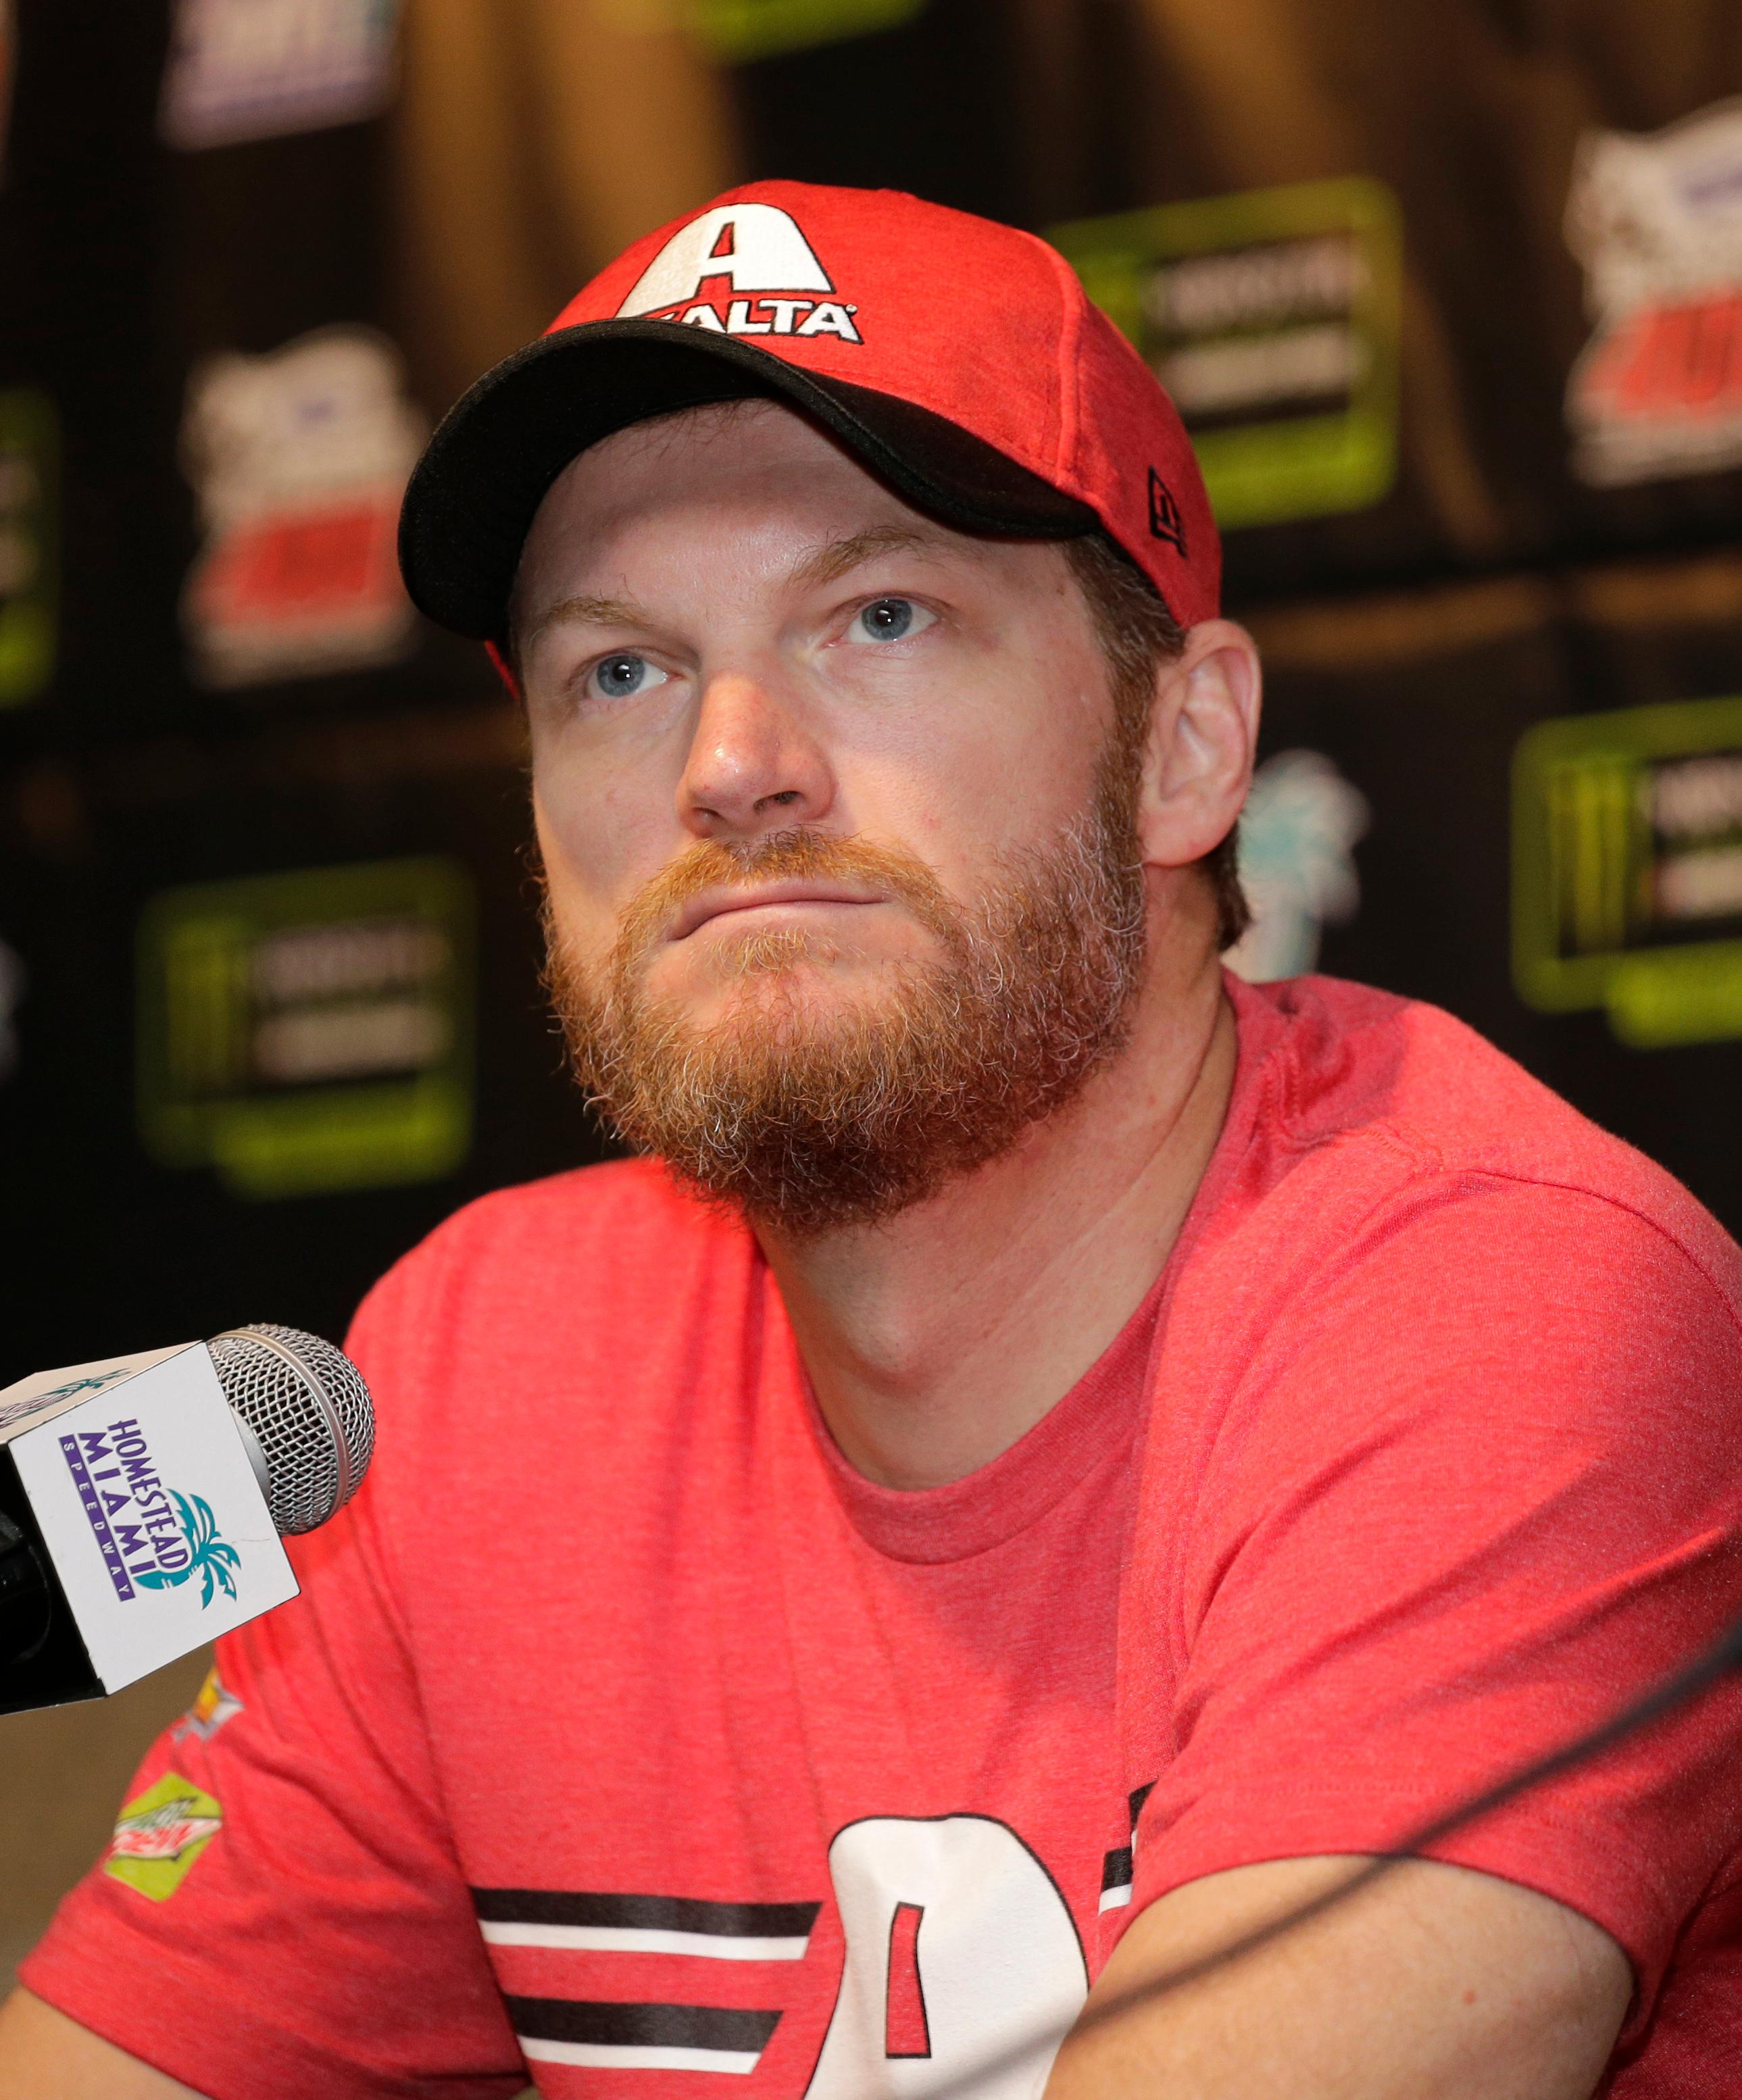 Dale Earnhardt Jr. speaks with the media during a news conference before Sunday's NASCAR Cup Series auto race at Homestead-Miami Speedway in Homestead, Fla., Friday, Nov. 17, 2017.(AP Photo/Terry Renna)